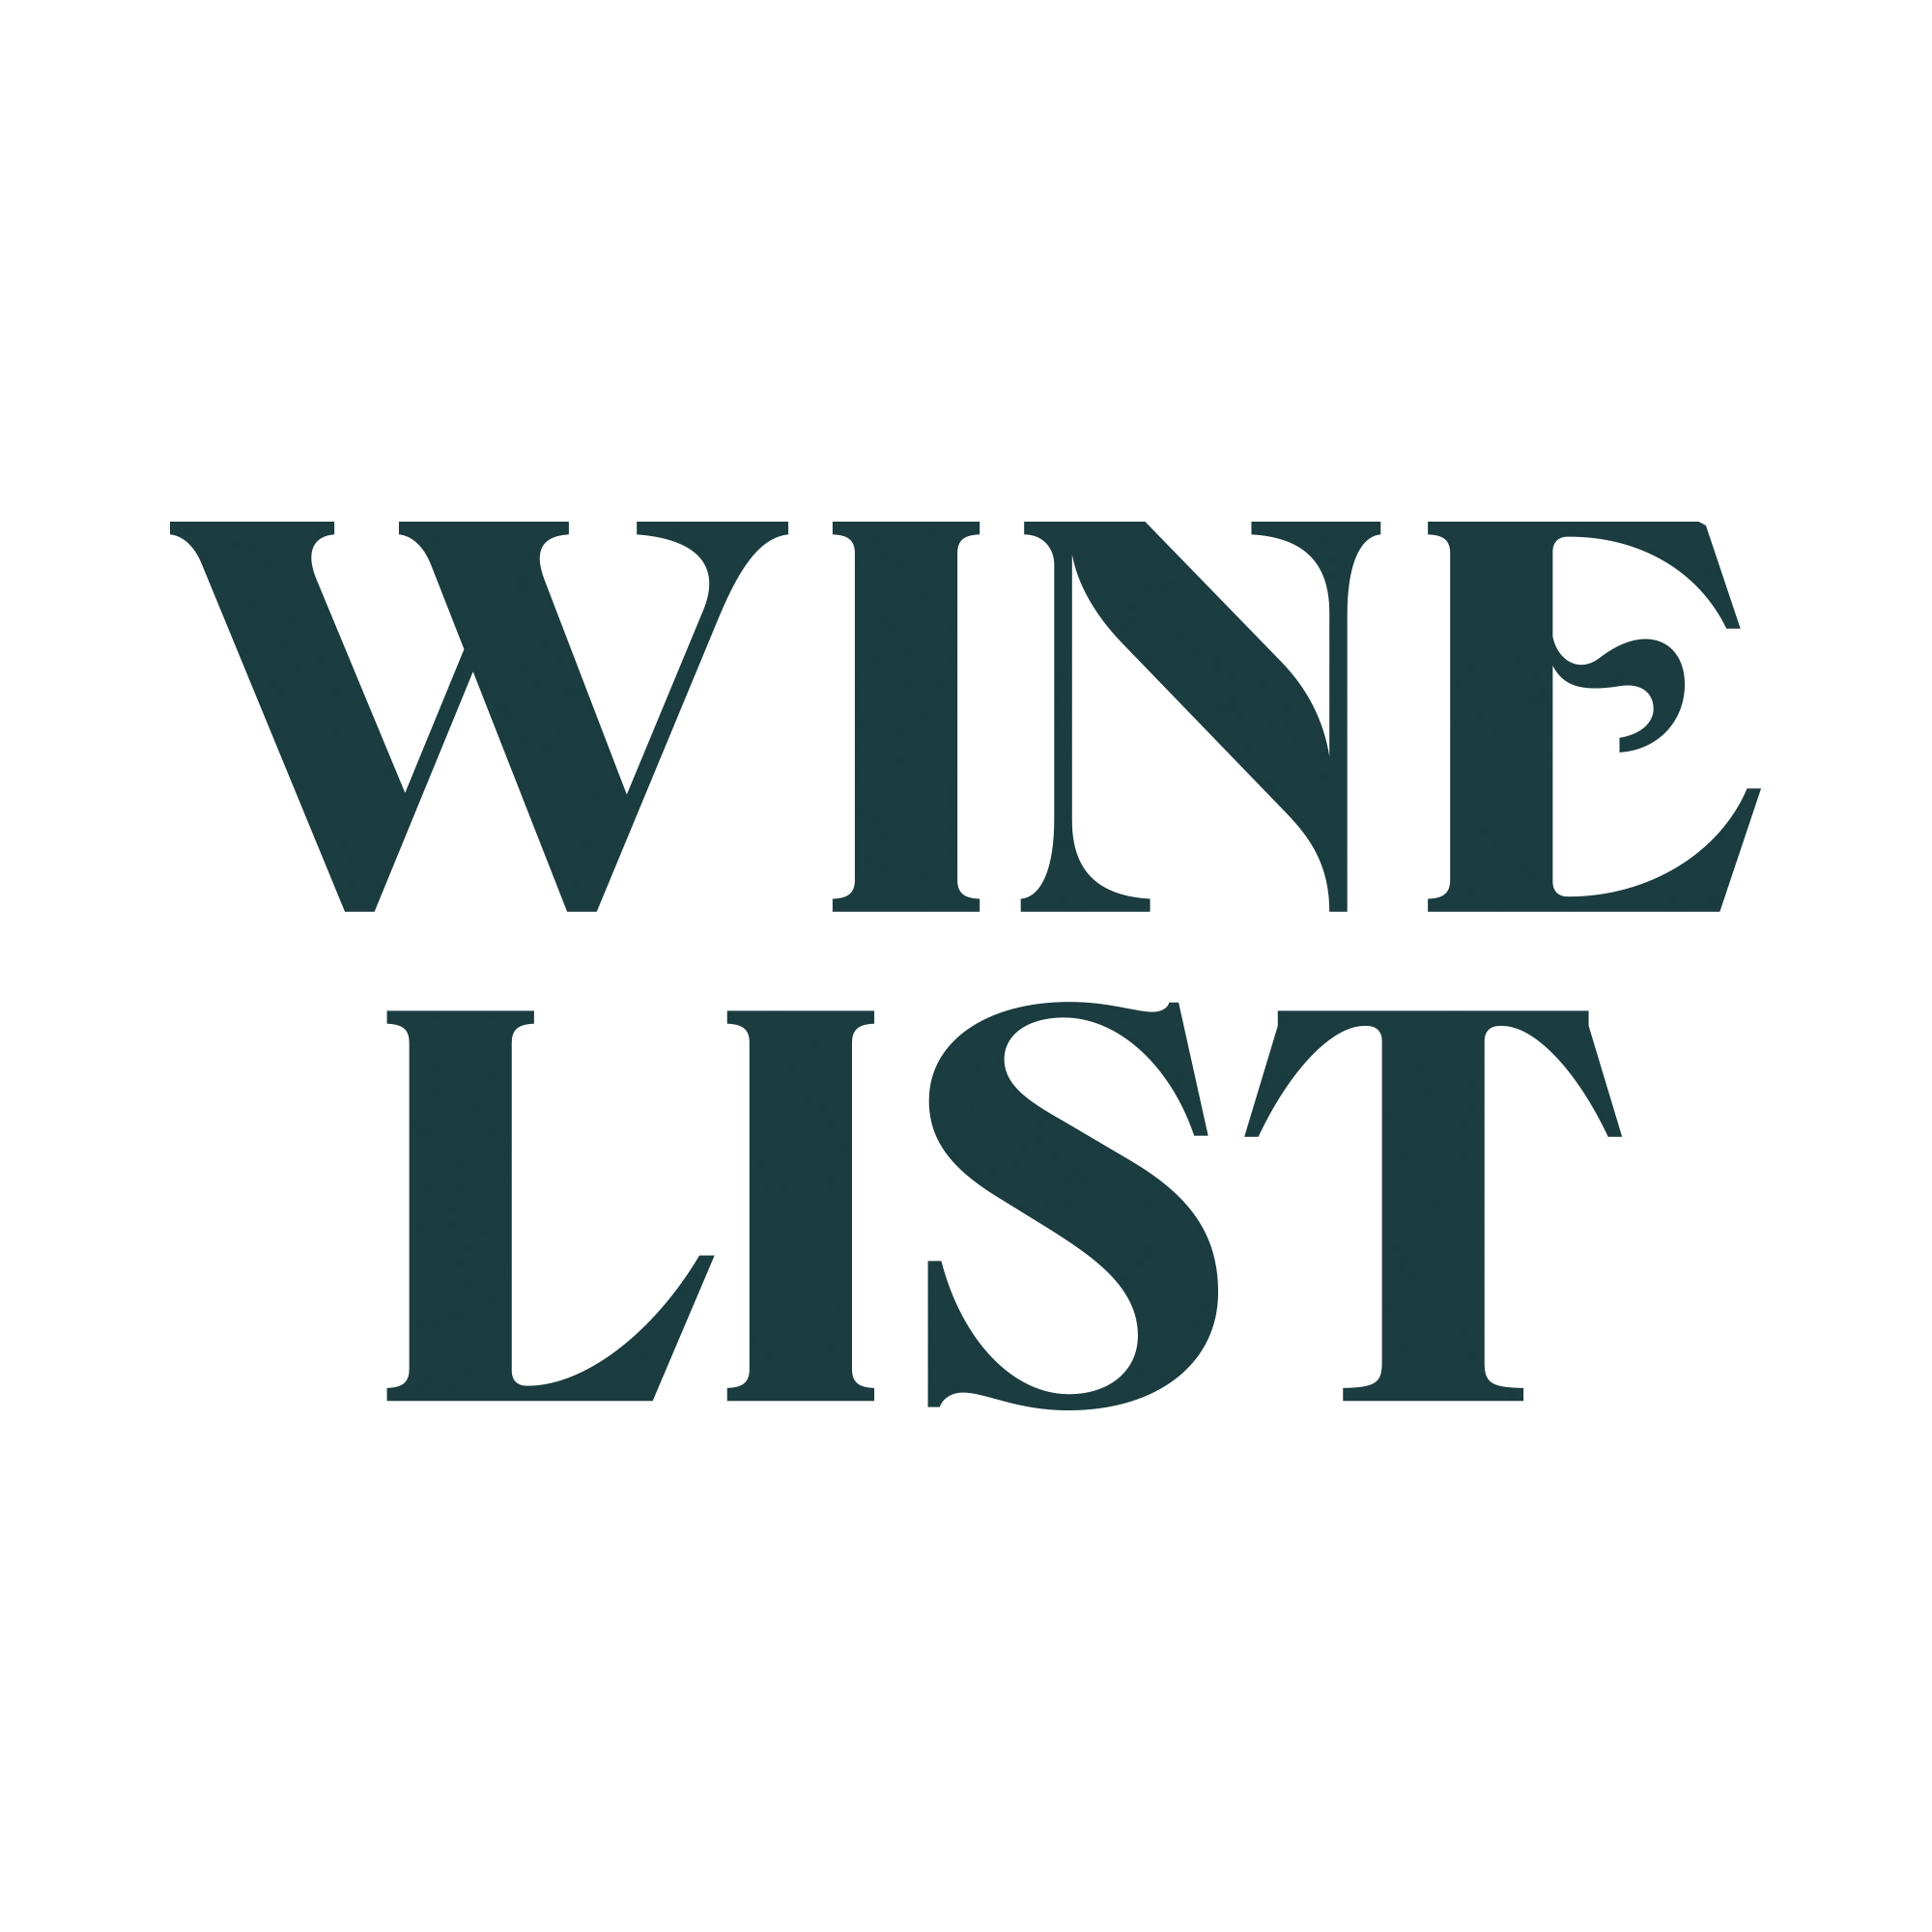 The Wine List logo